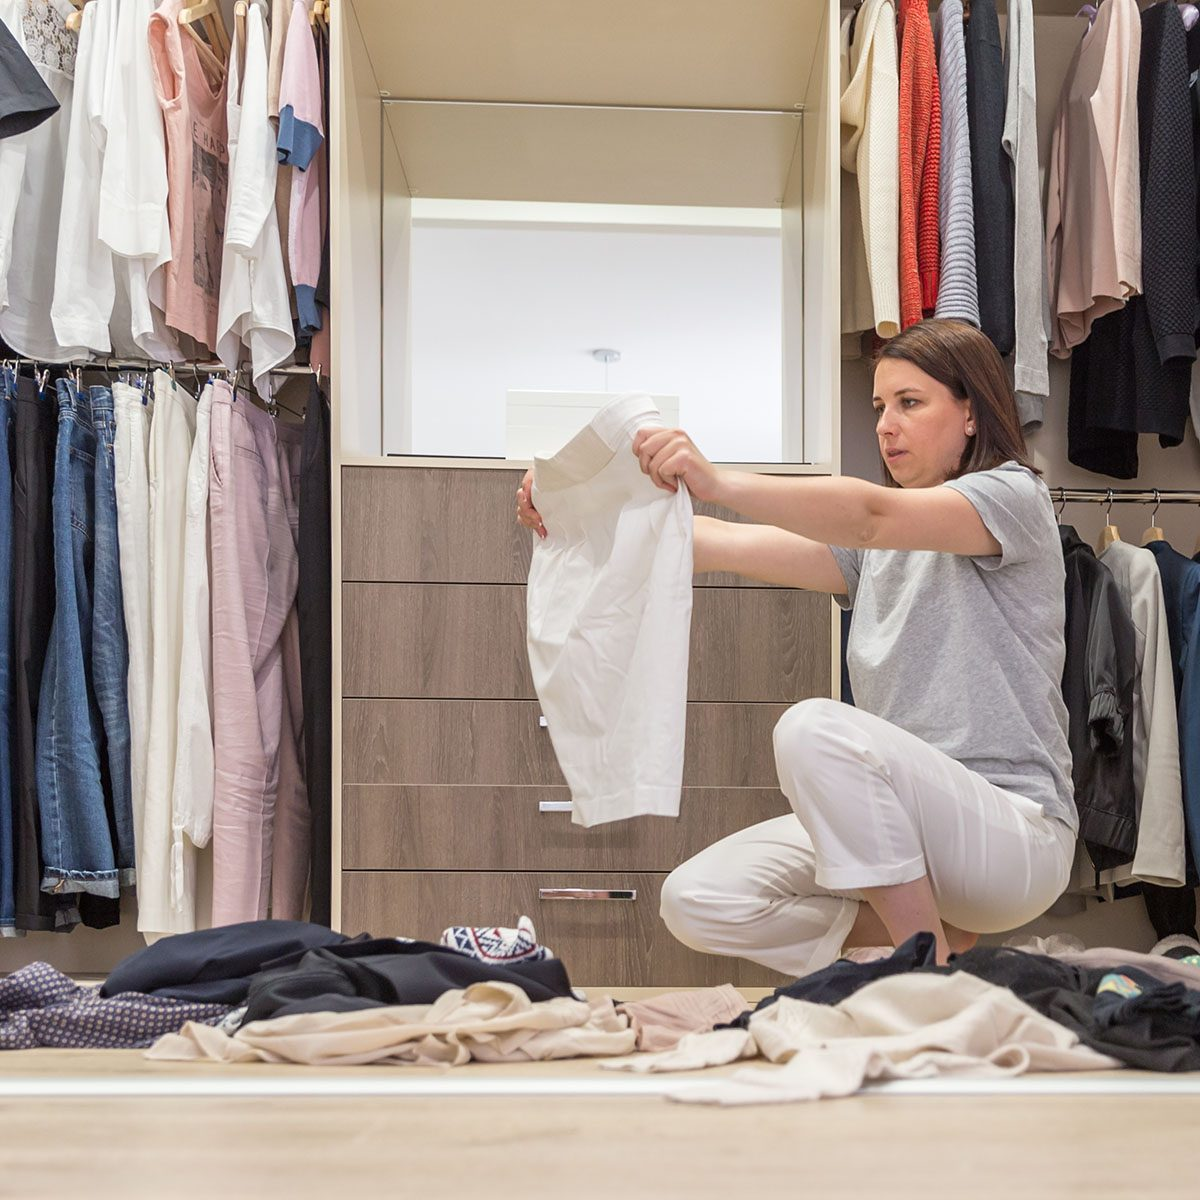 Young woman throwing clothes in walk in closet. Mess in wardrobe and dressing room concept